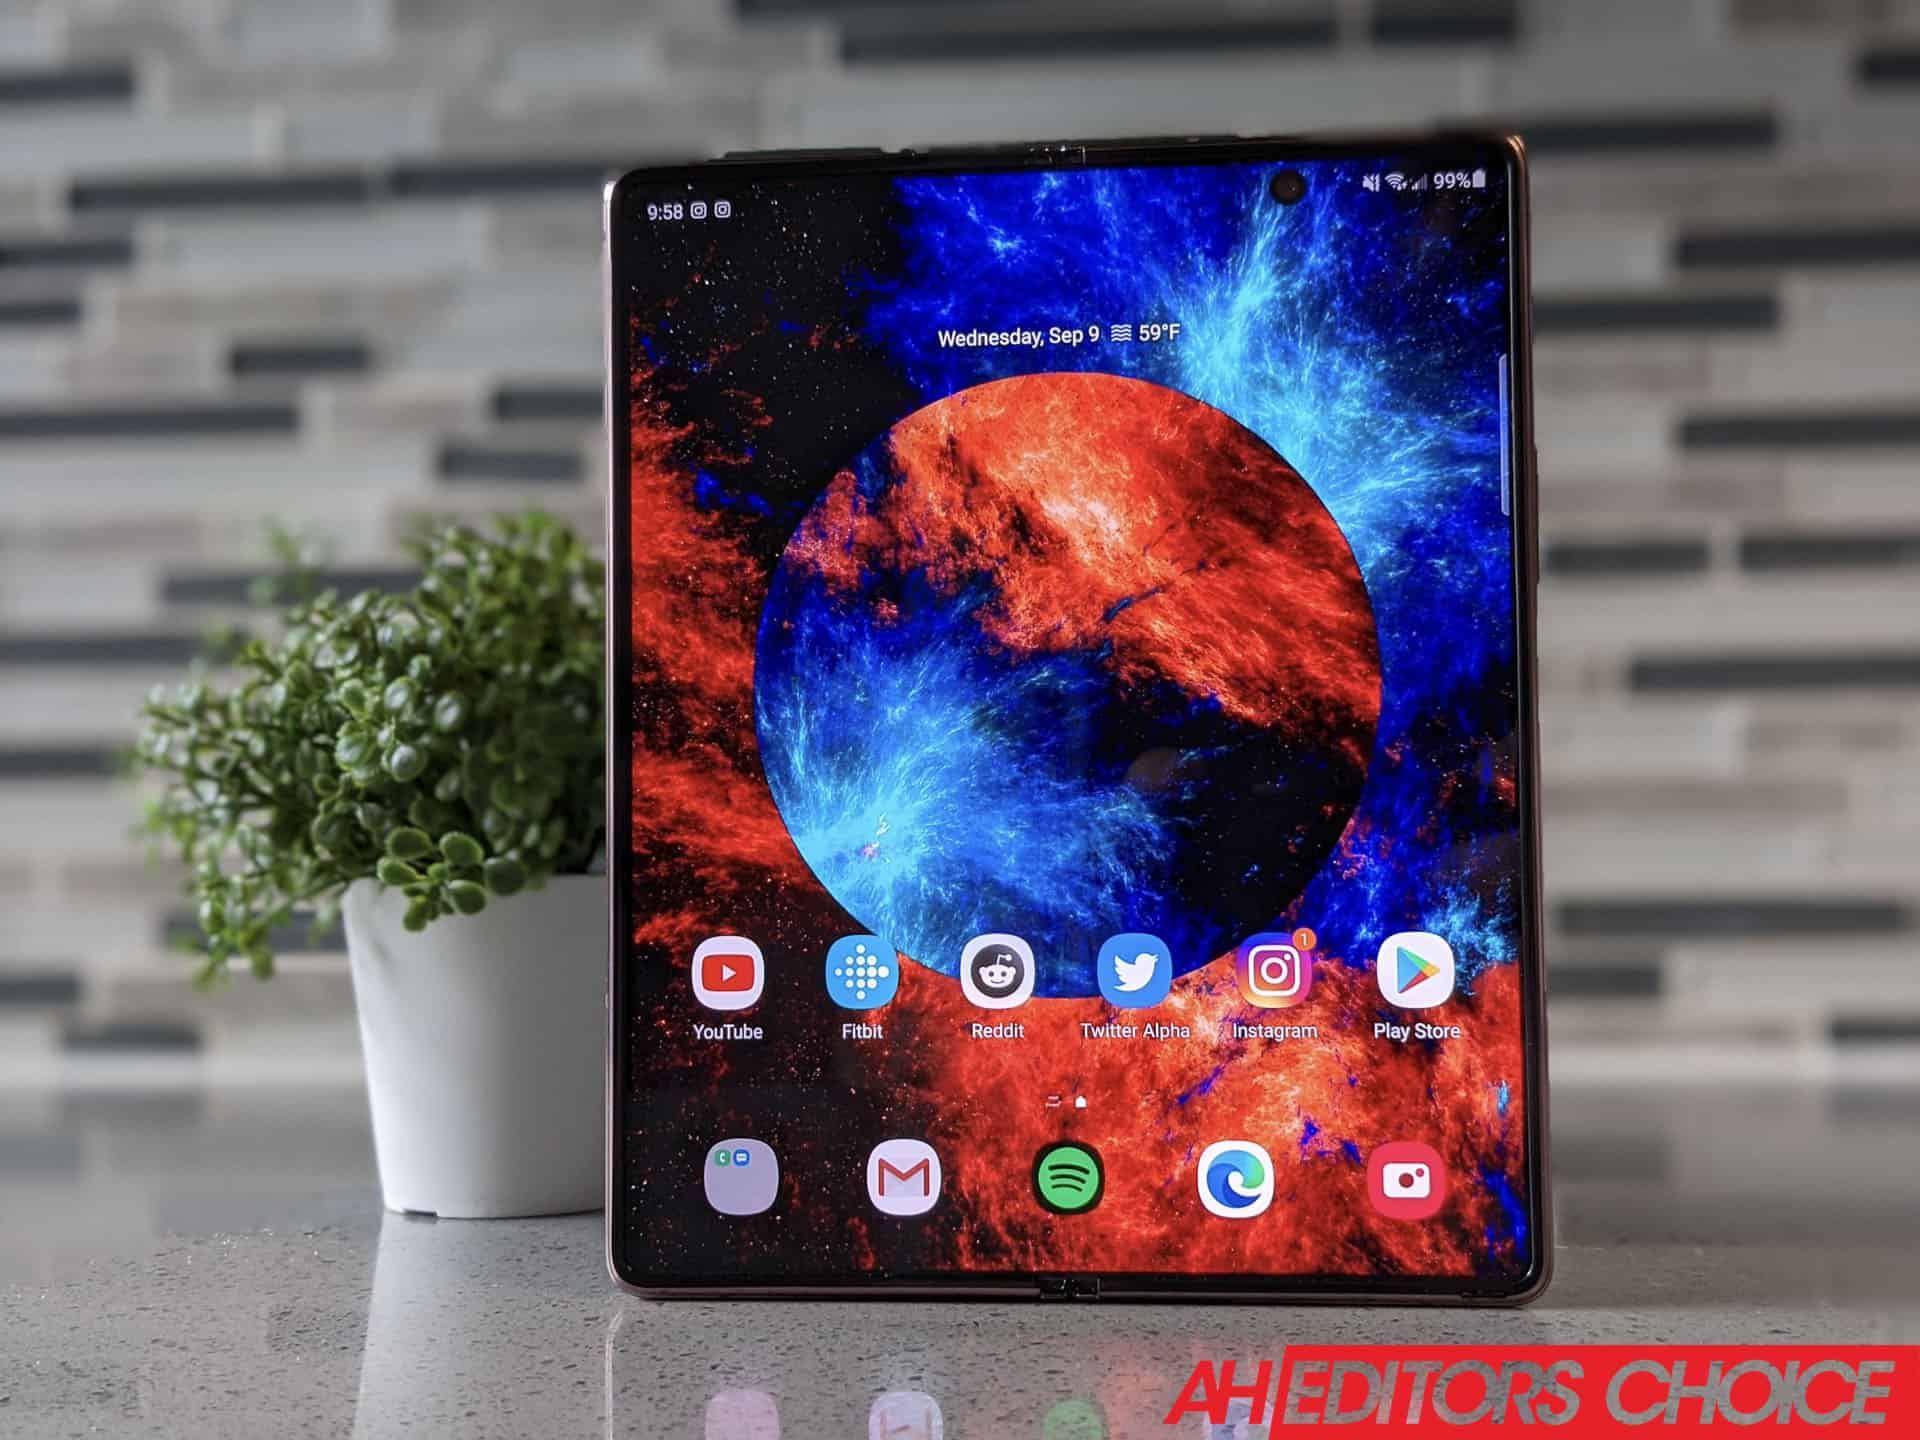 Samsung Galaxy Z Fold 2 Review: The Best Foldable Money Can Buy